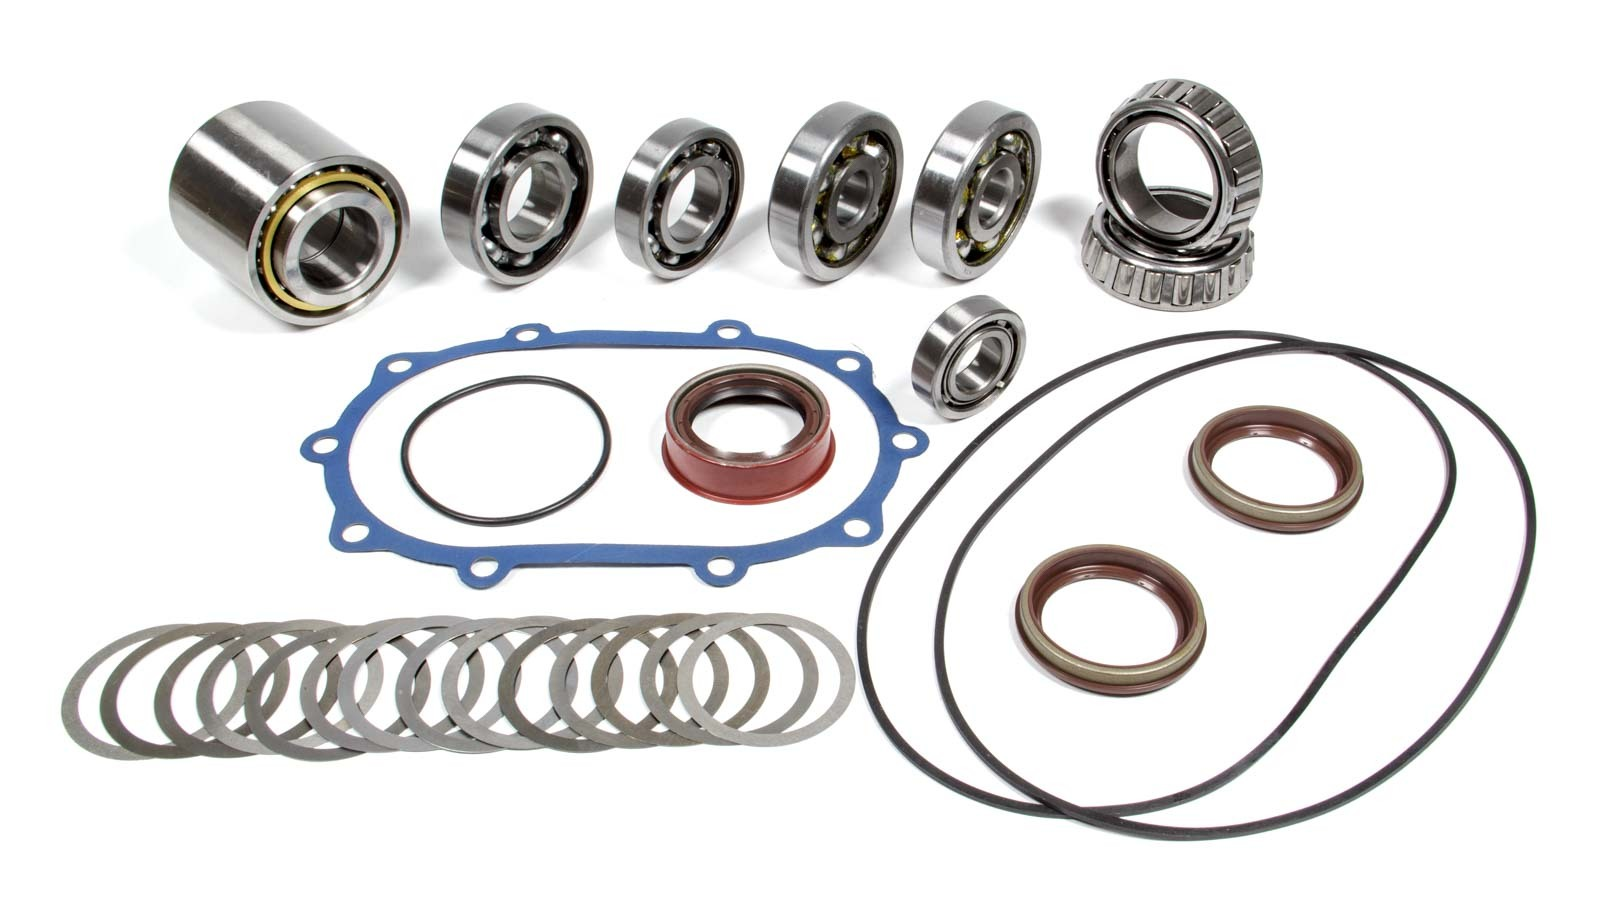 Tiger Quick Change Bearing and Seal Kit Low Drag Complete